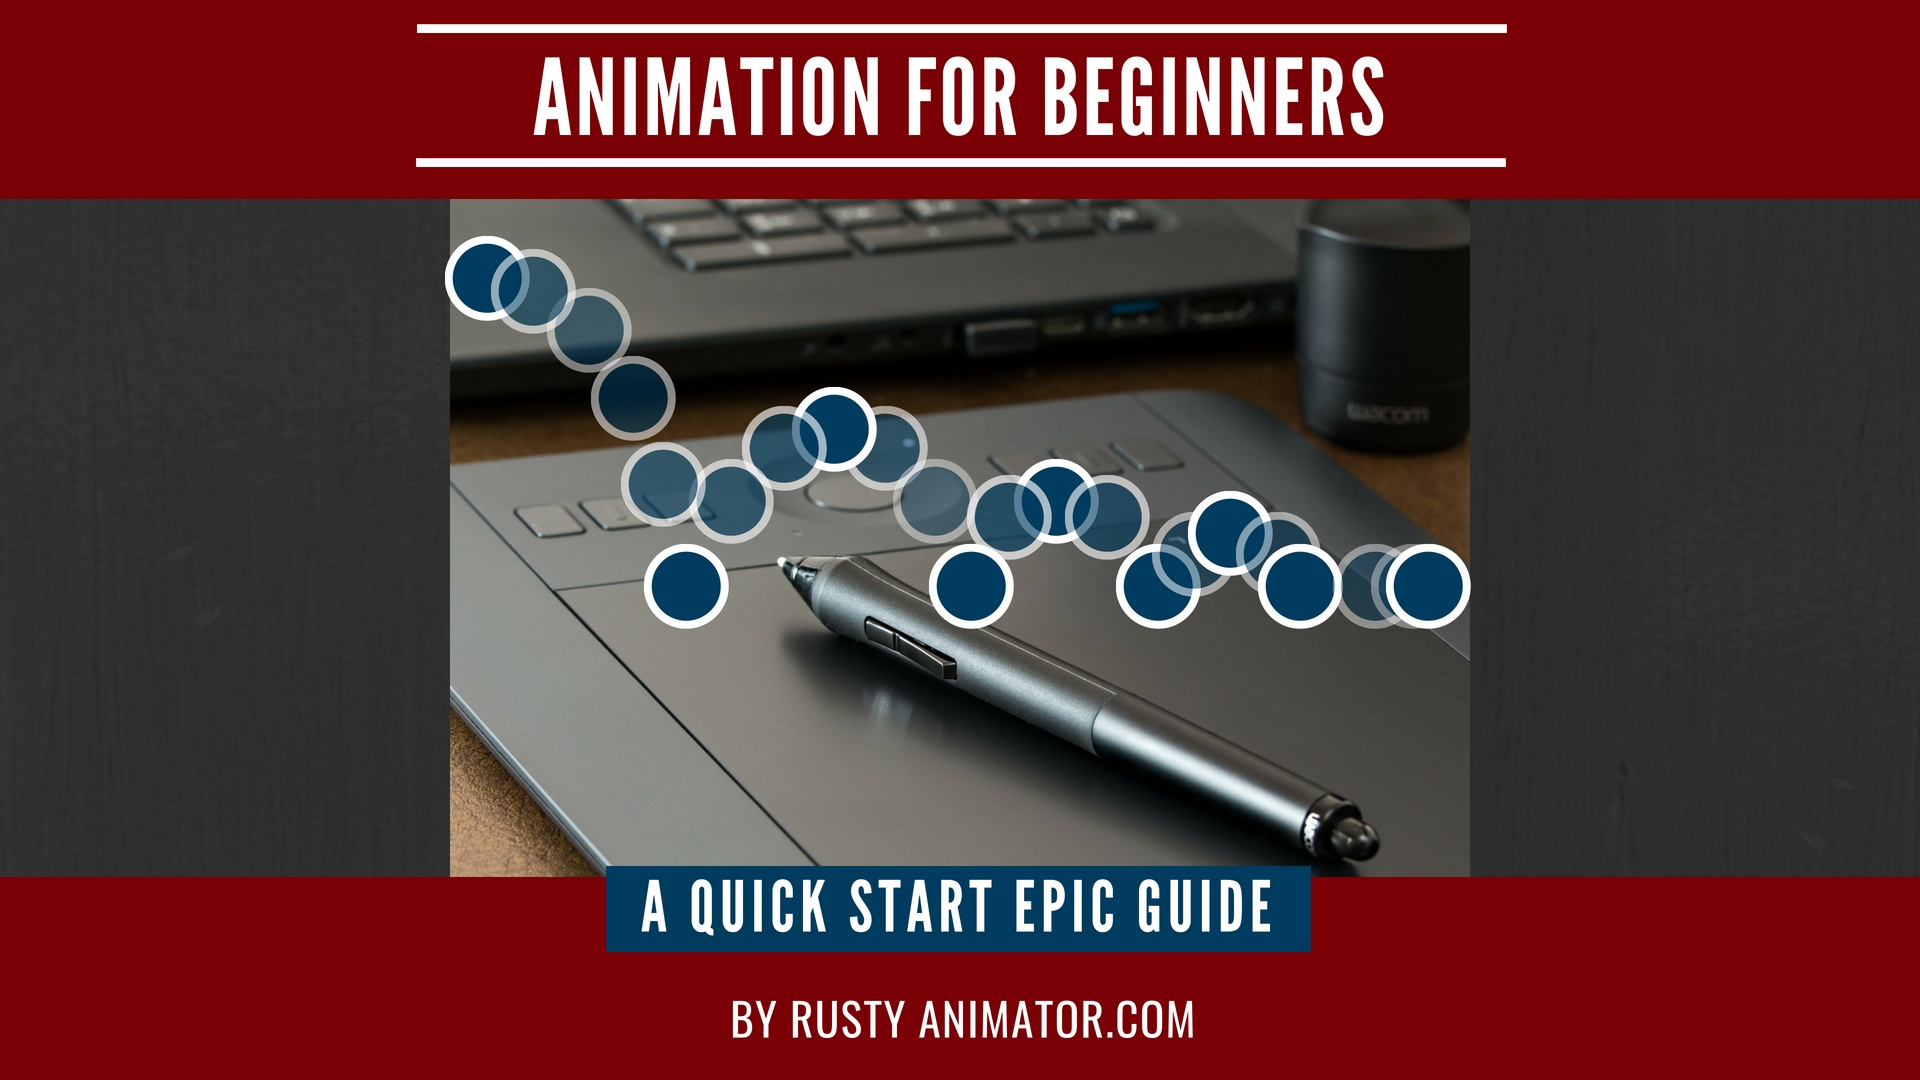 Animation For Beginners [A Quick Start Epic Guide] | Rusty Animator